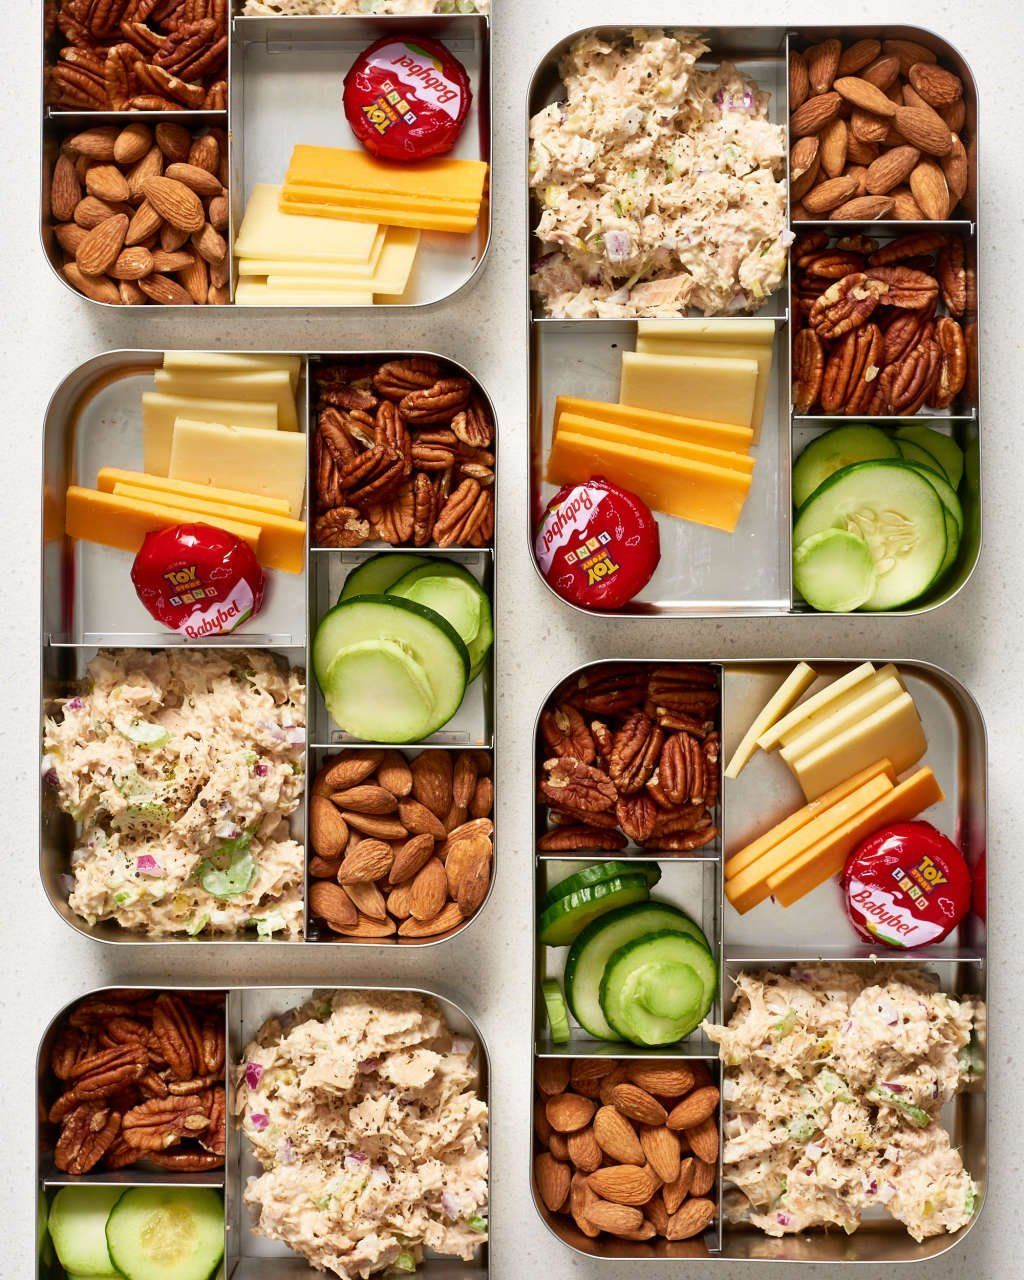 Fast Keto Meal Prep in Under 2 Hours. If youre looking to start the keto diet, this easy meal prep and plan template is great for beginners looking to cook for the week! These recipes and ideas are great for week 1, or for experienced ketogenic eaters. Low carb and good for losing weight and weight loss. Healthy dinners, lunches, and breakfasts!